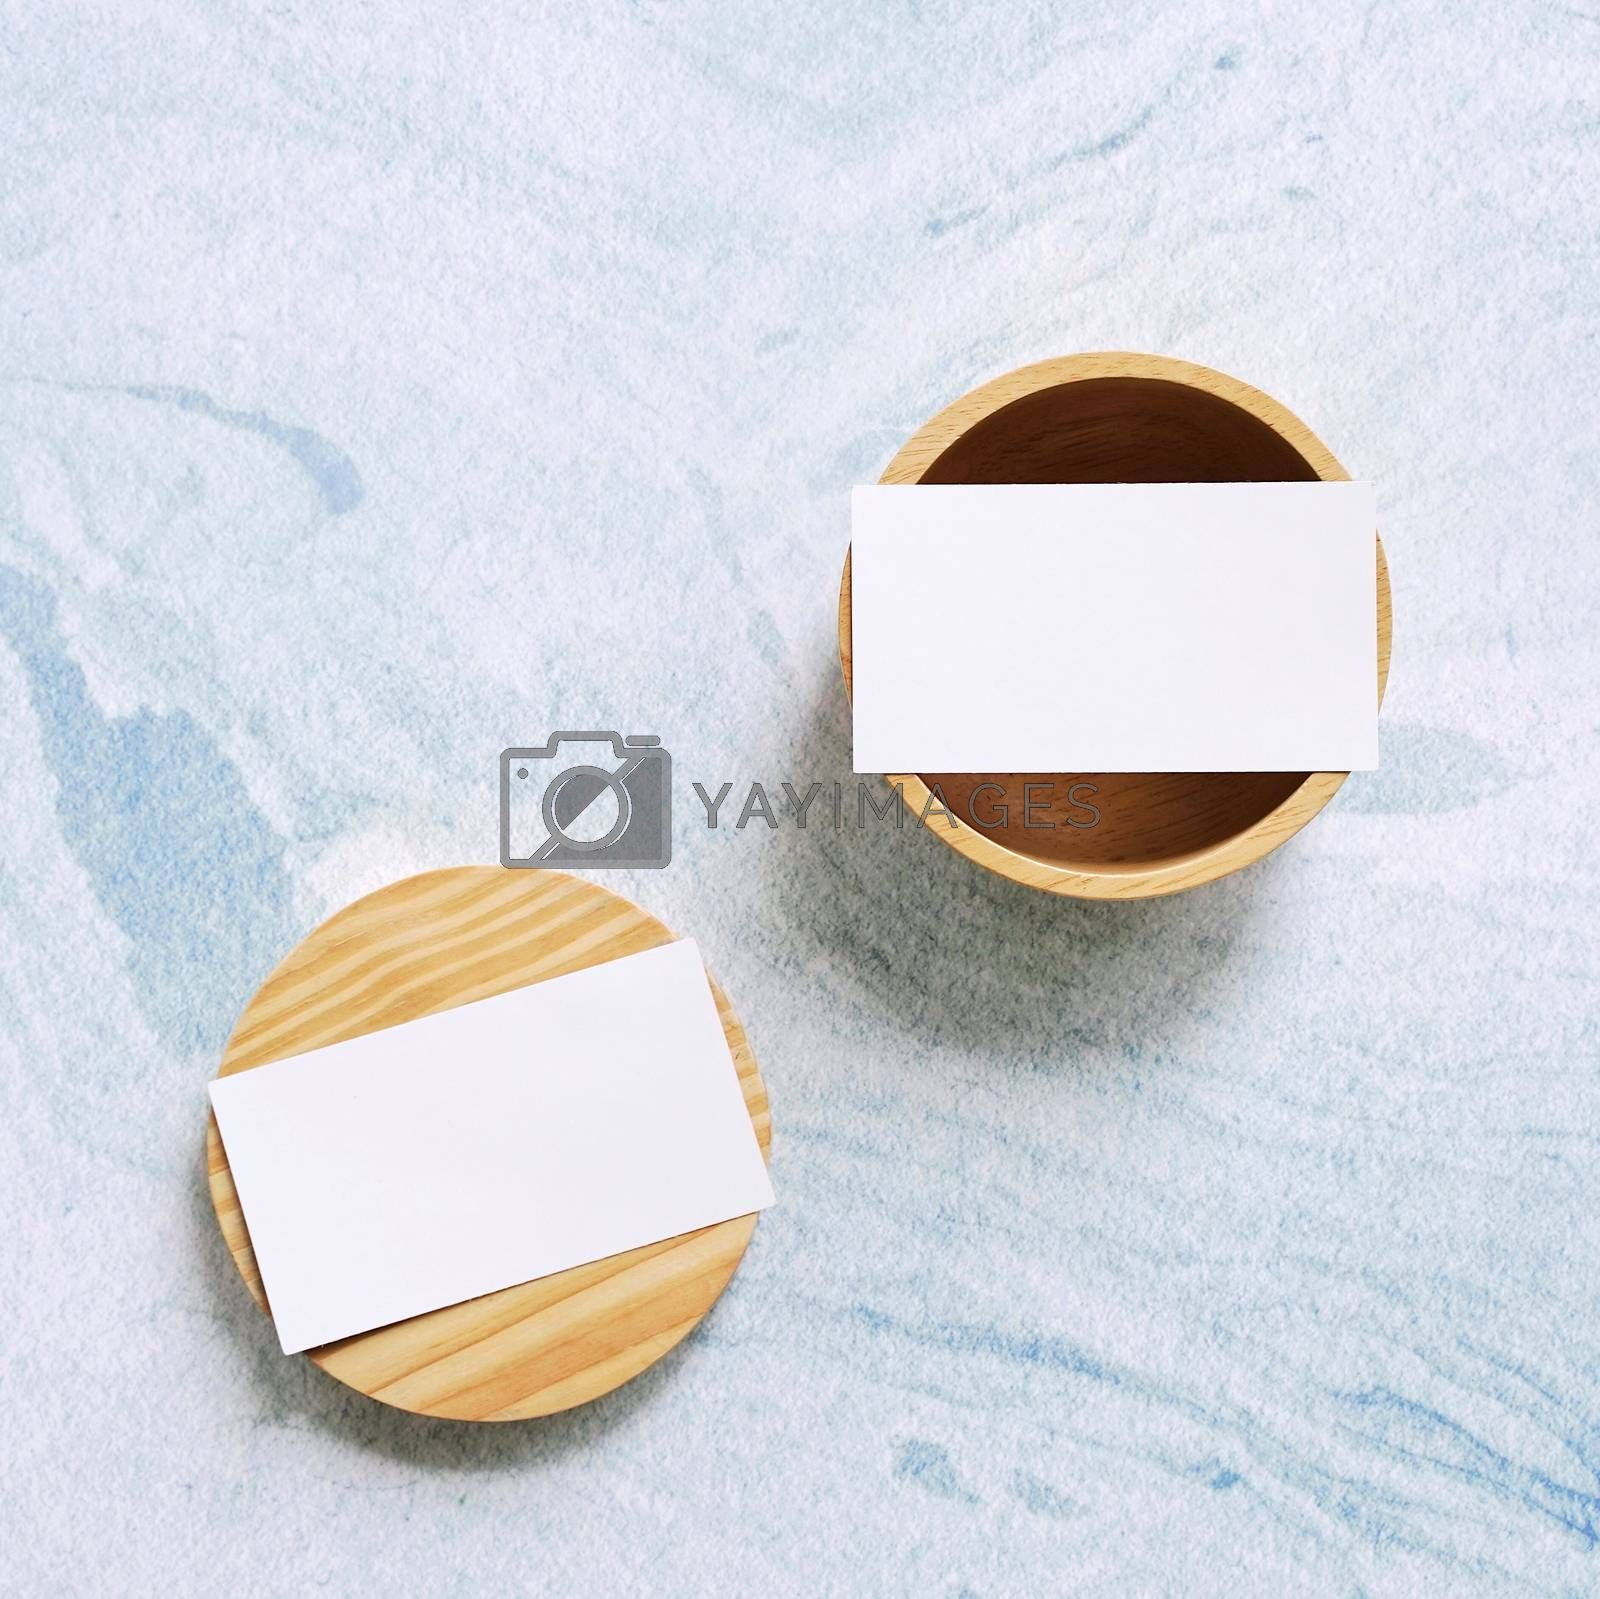 Royalty free image of Flat lay branding identity business name card on wooden containe by nuchylee